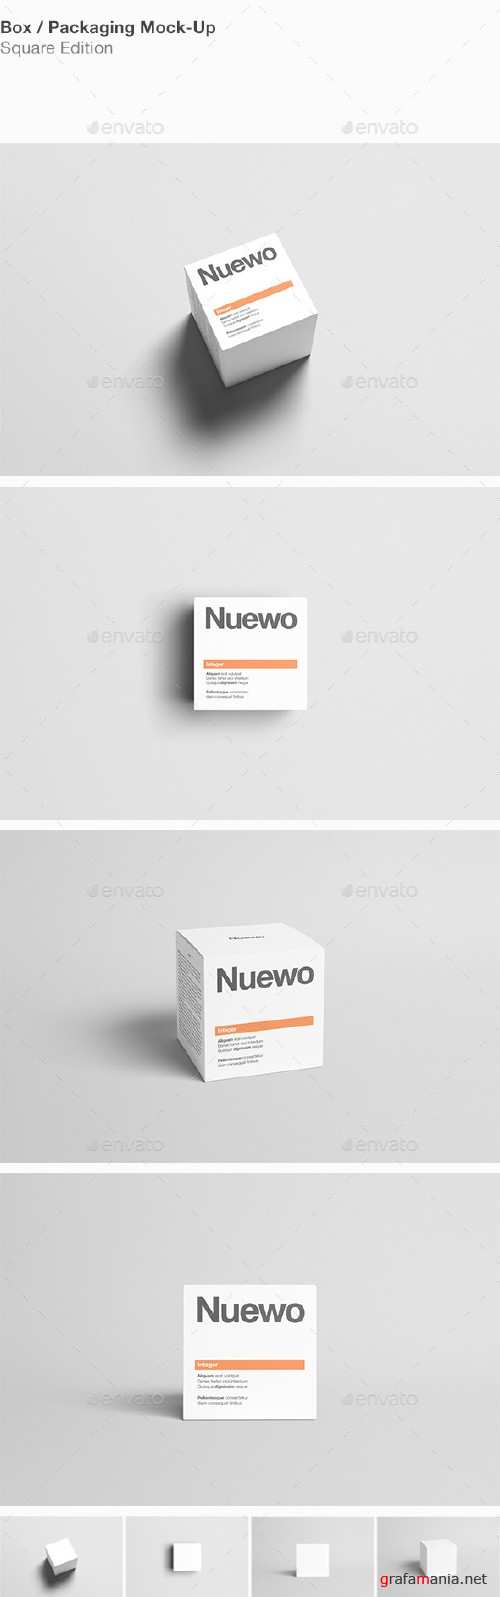 Box / Packaging Mock-Up - Square - 14190730